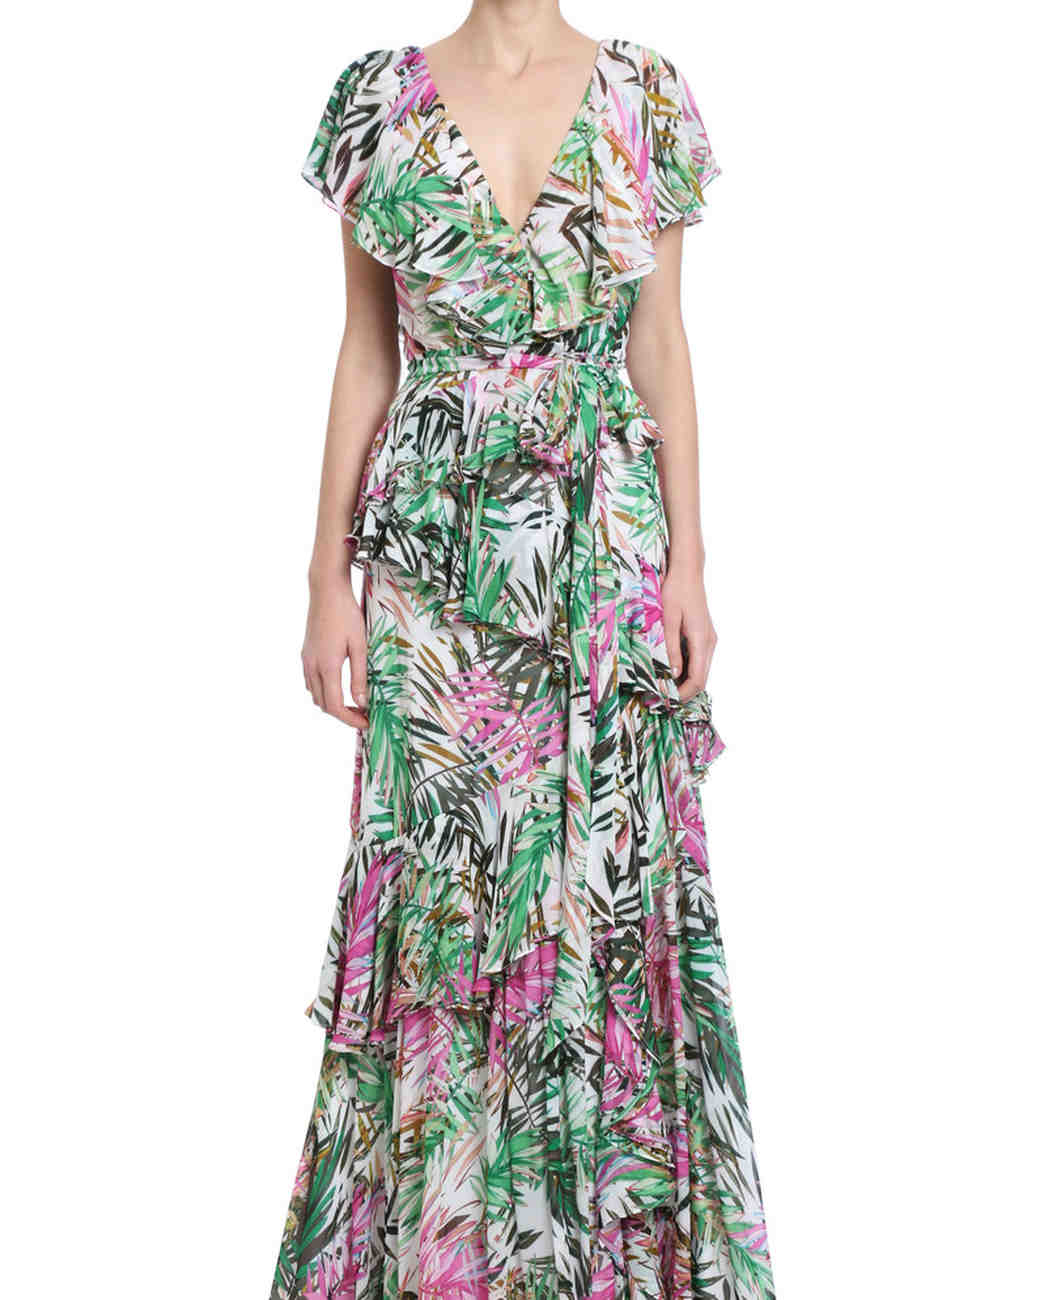 ruffled wrap palm-printed mob dress